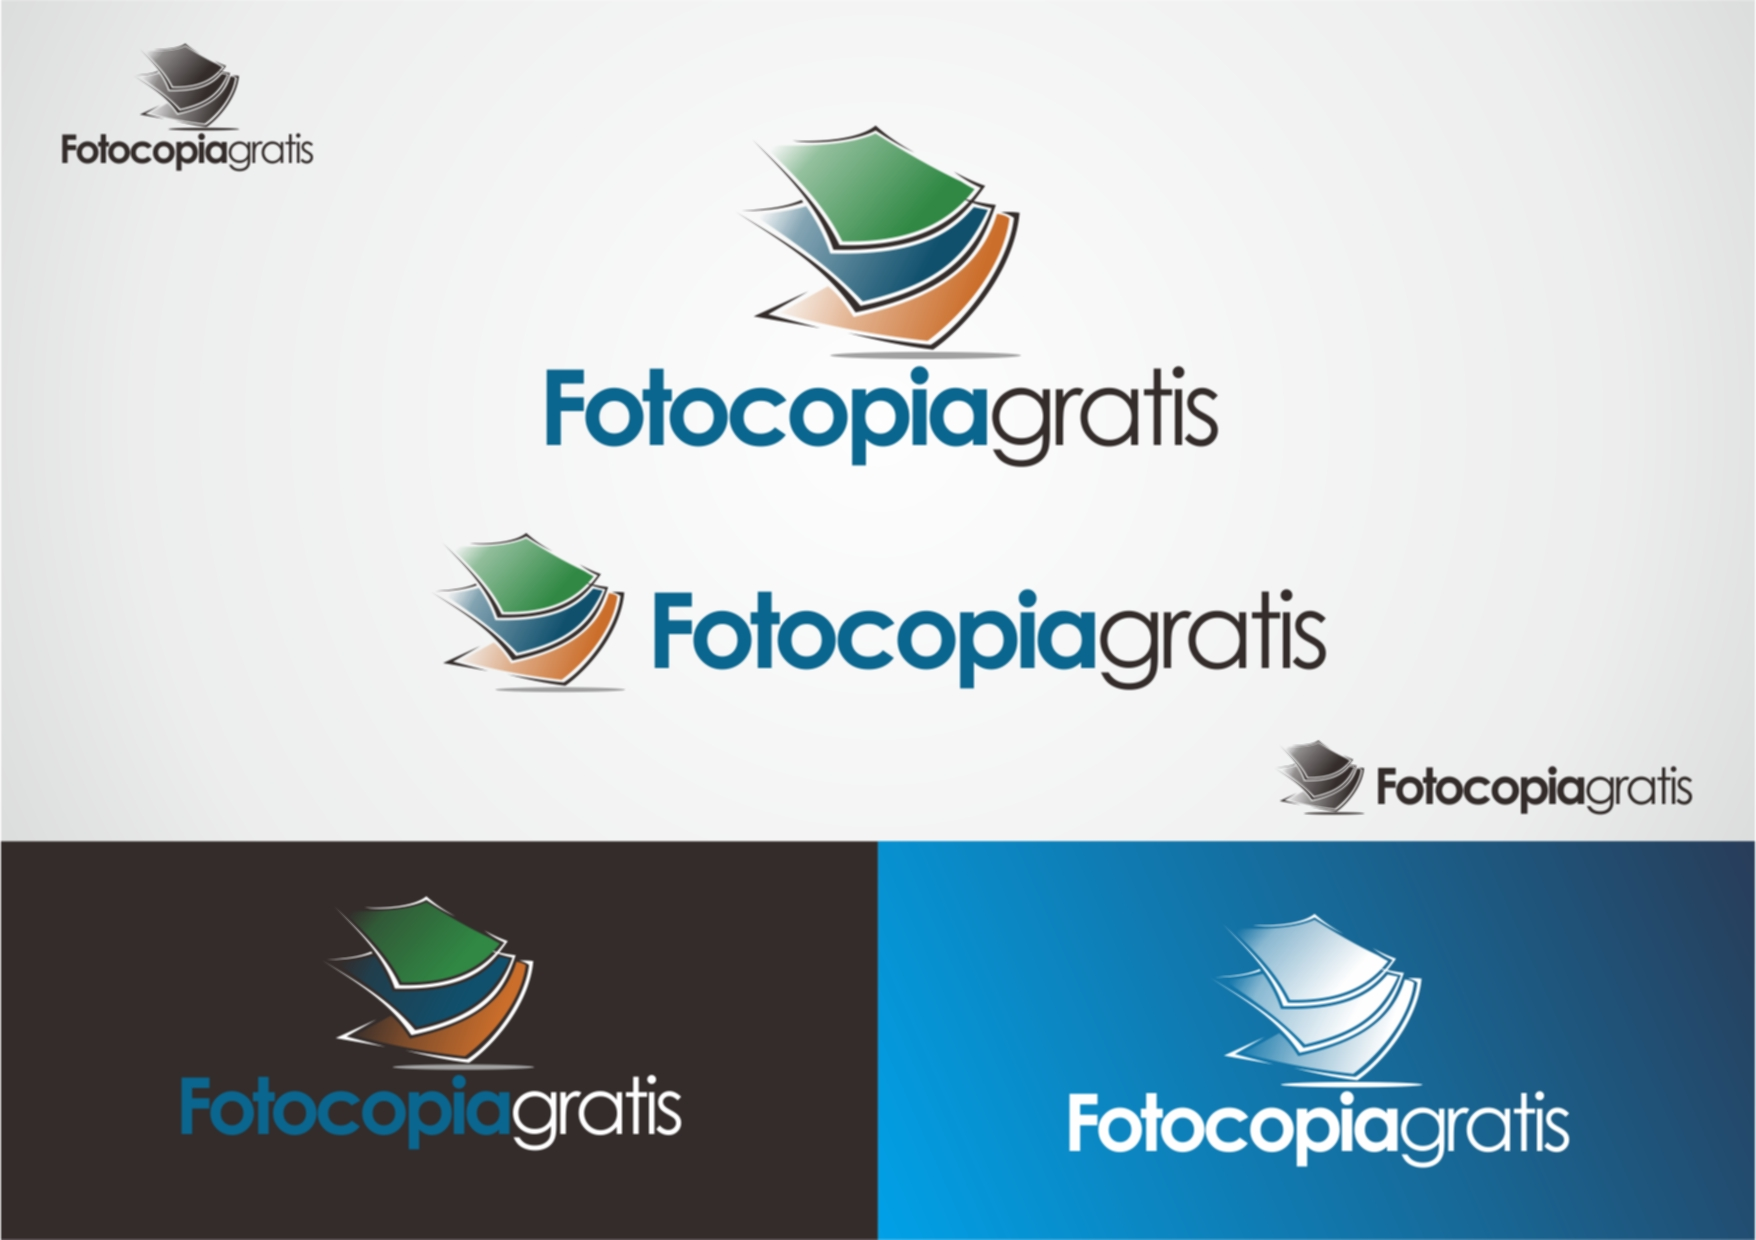 Logo Design by Private User - Entry No. 40 in the Logo Design Contest Inspiring Logo Design for Fotocopiagratis.